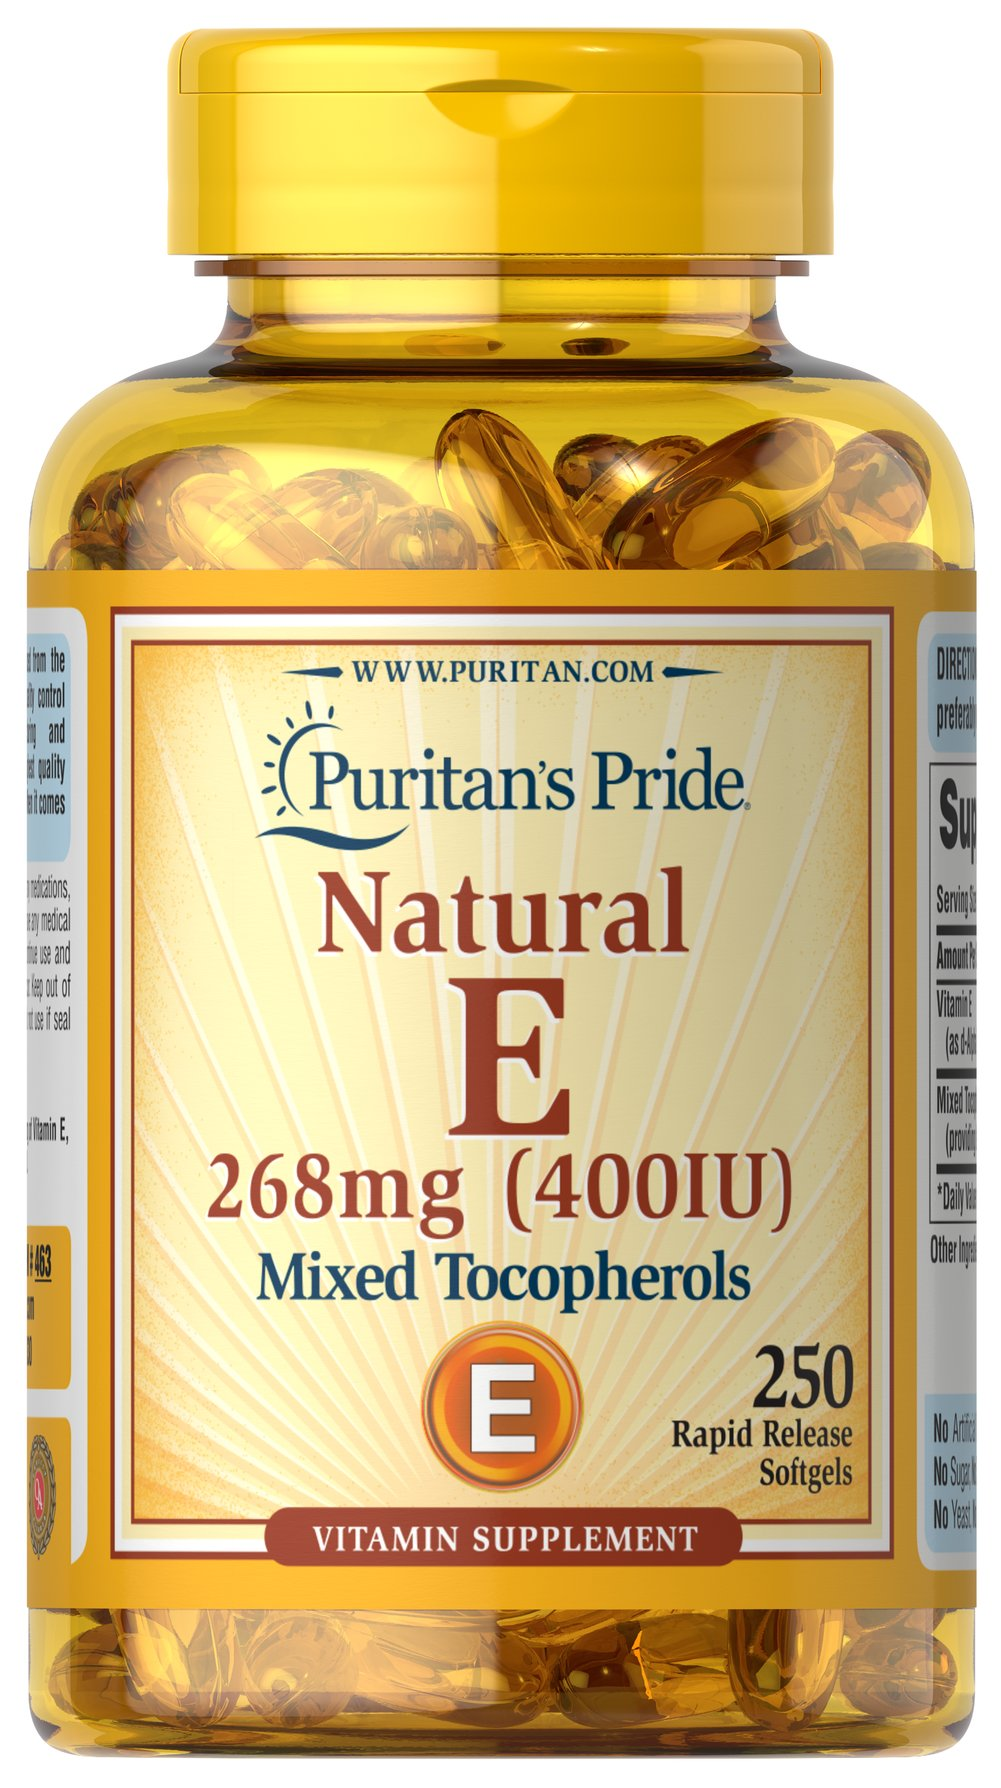 Vitamin E-400 iu Mixed Tocopherols Natural <p><strong>Vitamin E</strong> promotes immune function and helps support cardiovascular health.** Vitamin E is also a powerful <strong>antioxidant</strong> that helps fight cell-damaging free radicals in the body.** Studies have shown that oxidative stress caused by free radicals may contribute to the premature aging of cells.**</p> 250 Softgels 400 IU $46.99